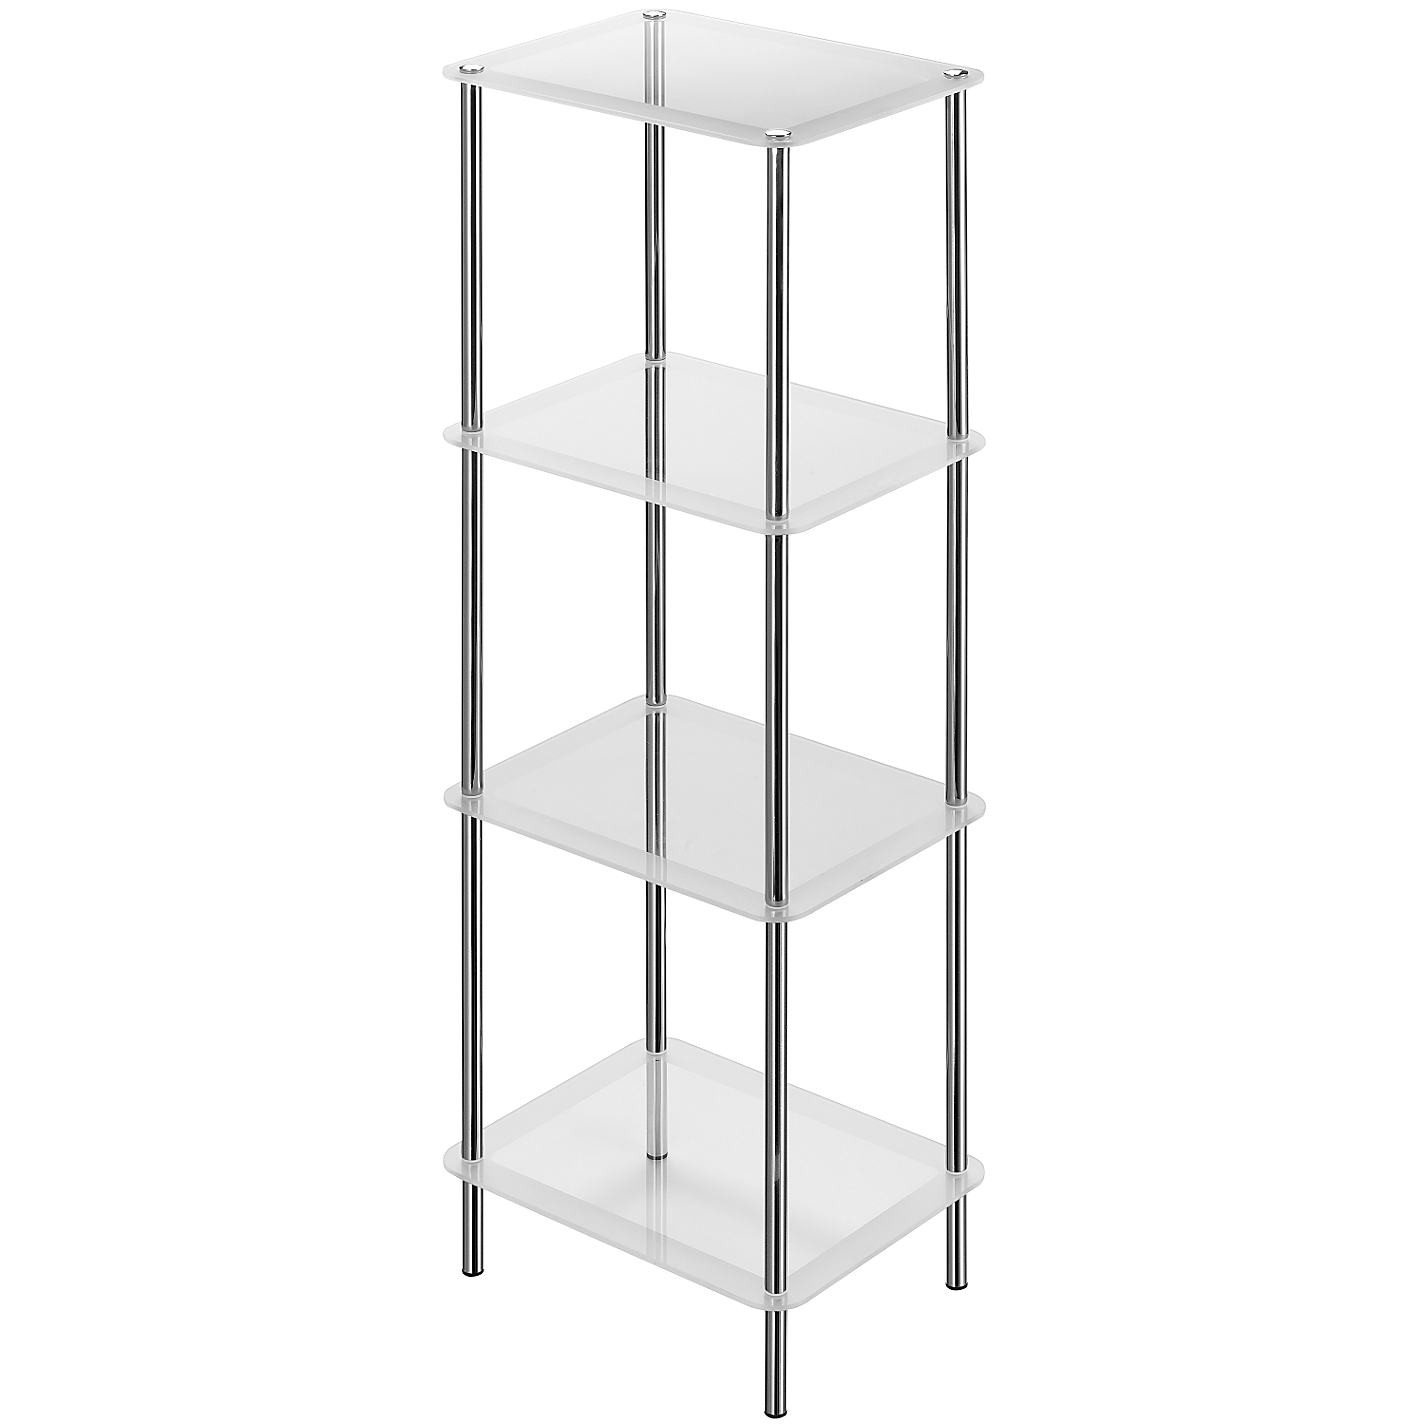 Bathroom Free Standing Shelving Units Bathroom Design Inside Free Standing Glass Shelves (#3 of 12)